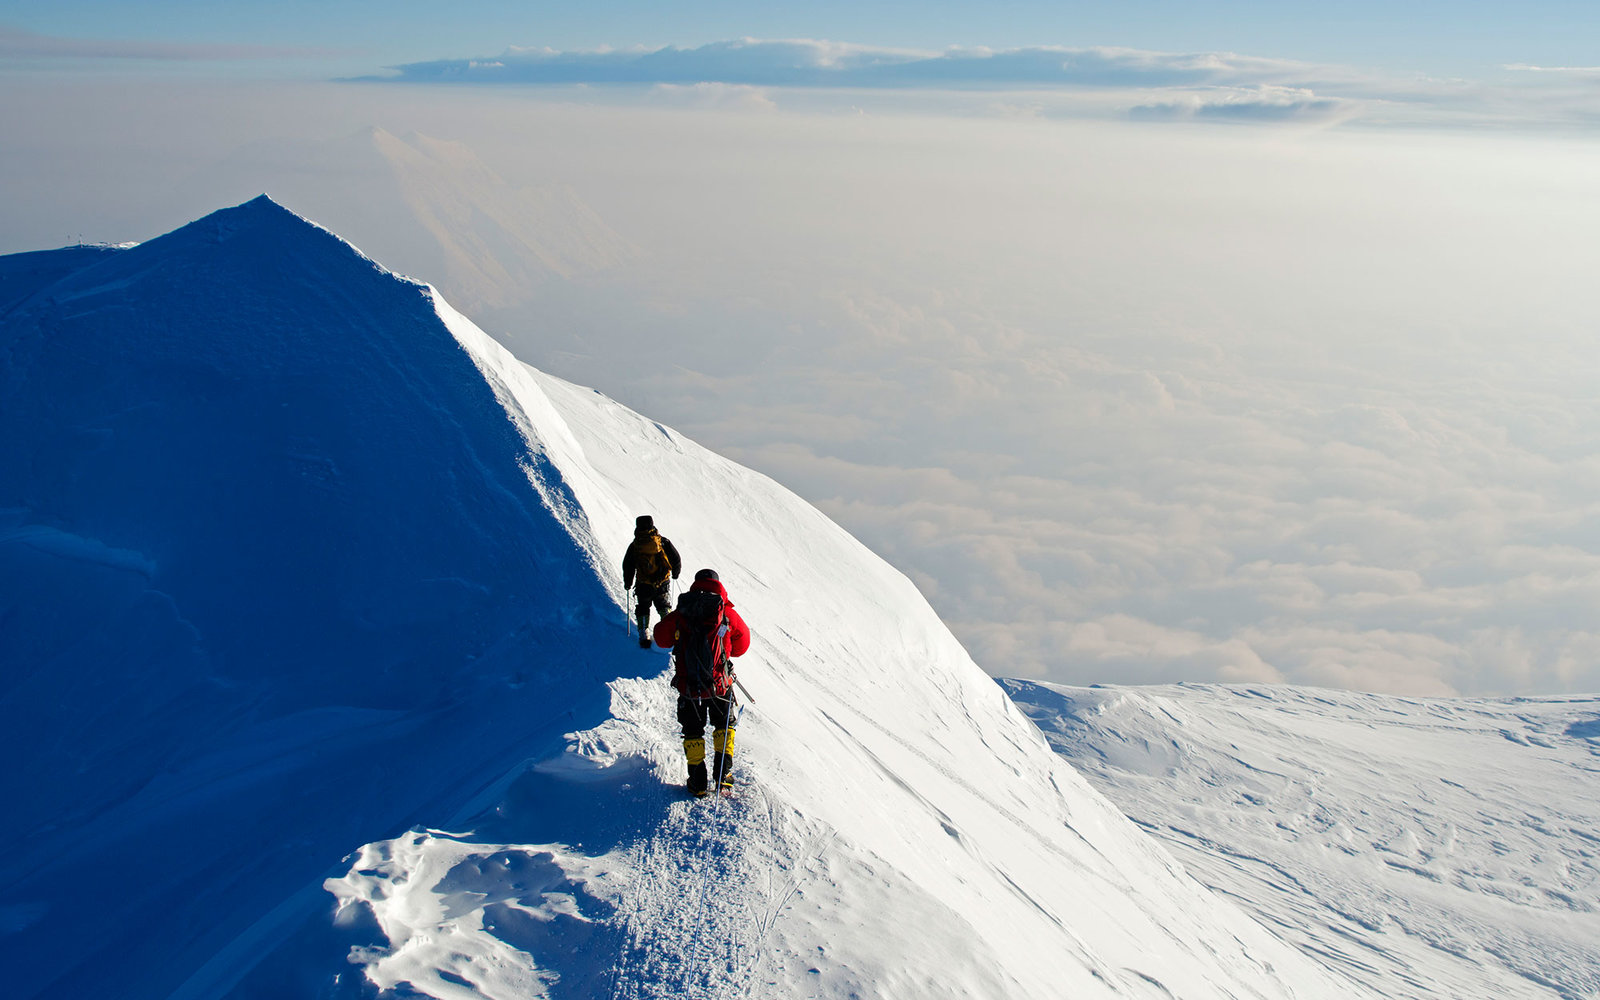 USA, United States of America, Alaska, Denali National Park, summit ridge, climbing expedition on Mt McKinley 6194m, highest mountain in north America